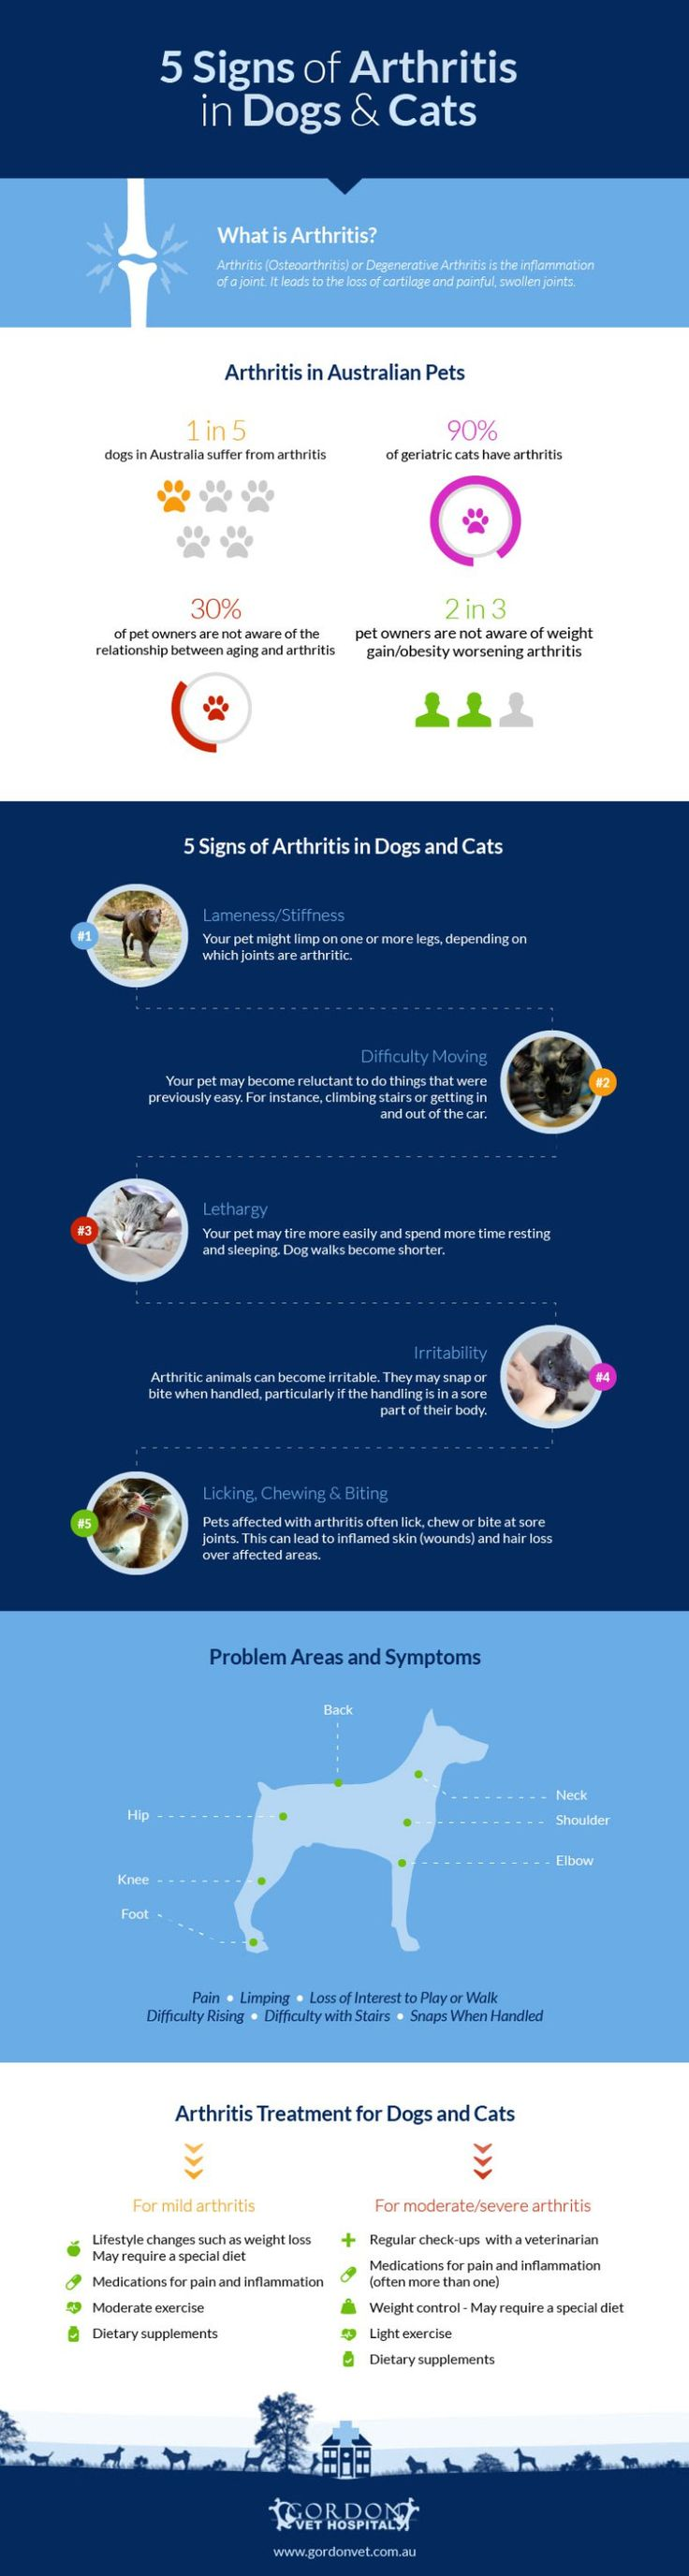 5-signs-arthritis-dogs-cats